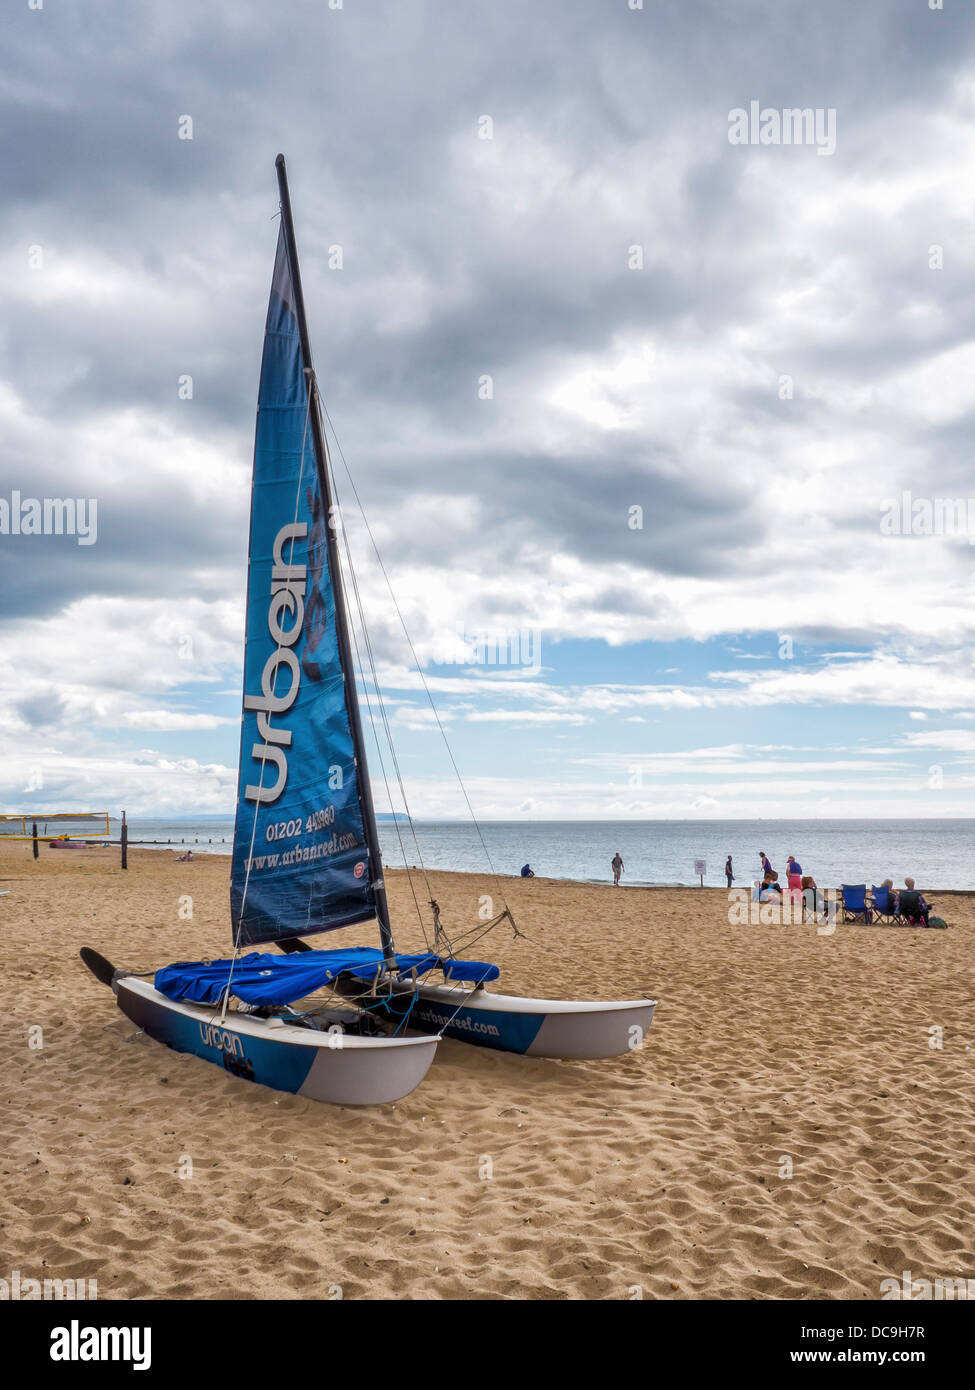 A catamaran with a blue sail on the beach next to the English Channel at Boscombe, Bournemouth, Dorset Stock Photo